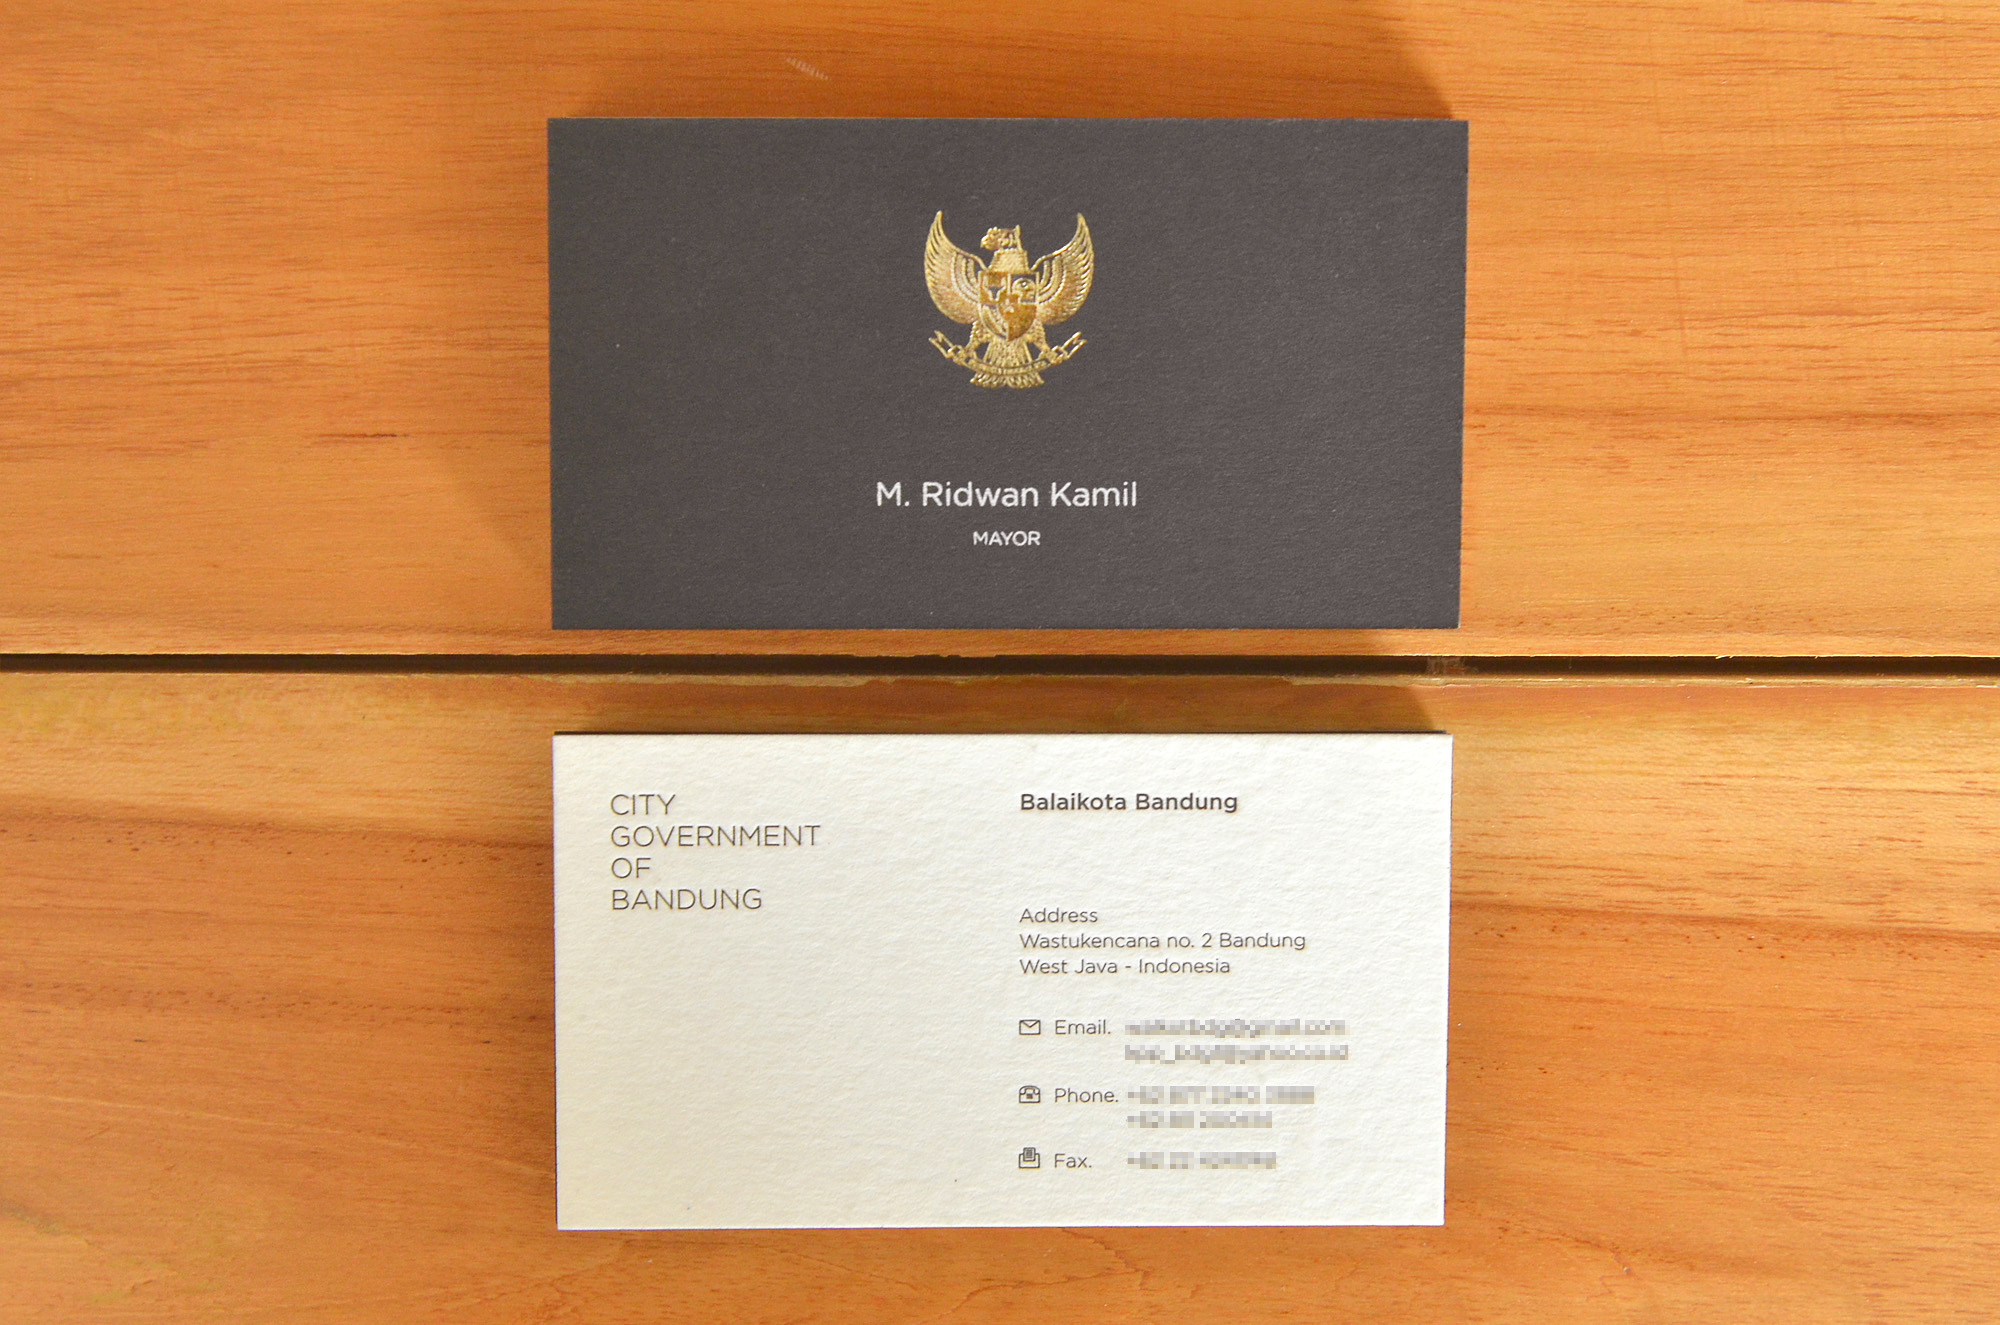 Ridwan Kamil Namecard on Business Portfolio